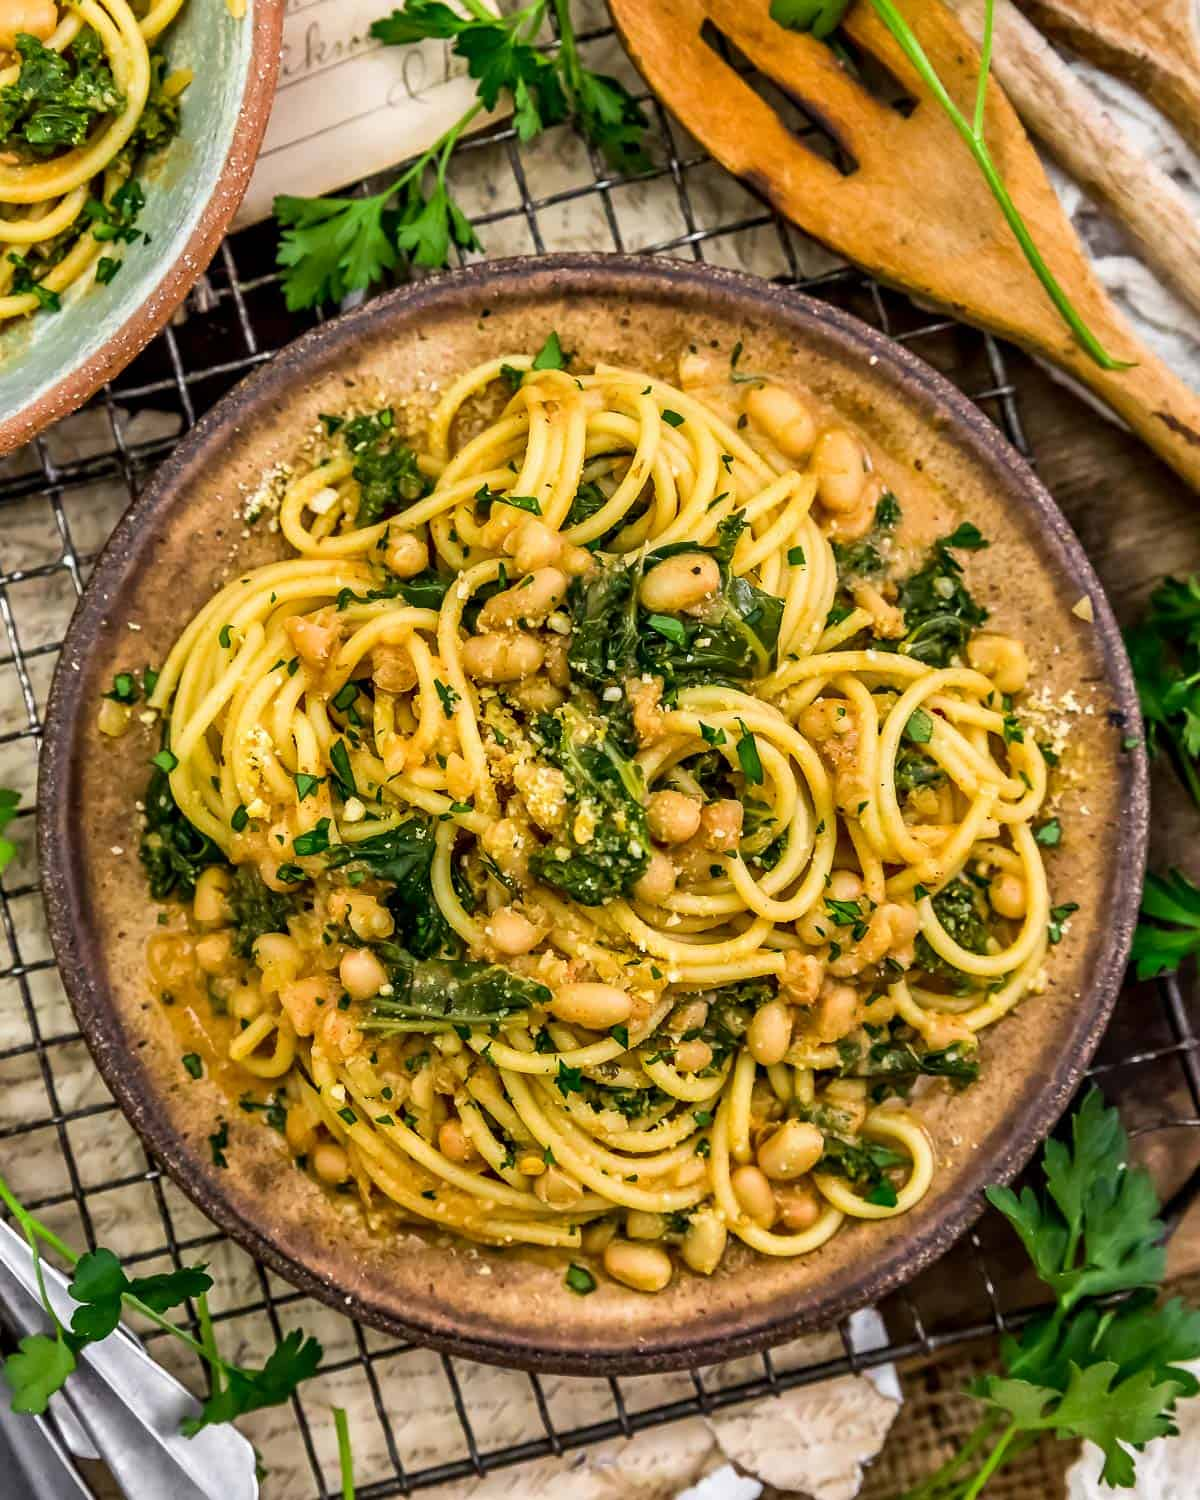 Plate of Smoky Kale and Bean Pasta